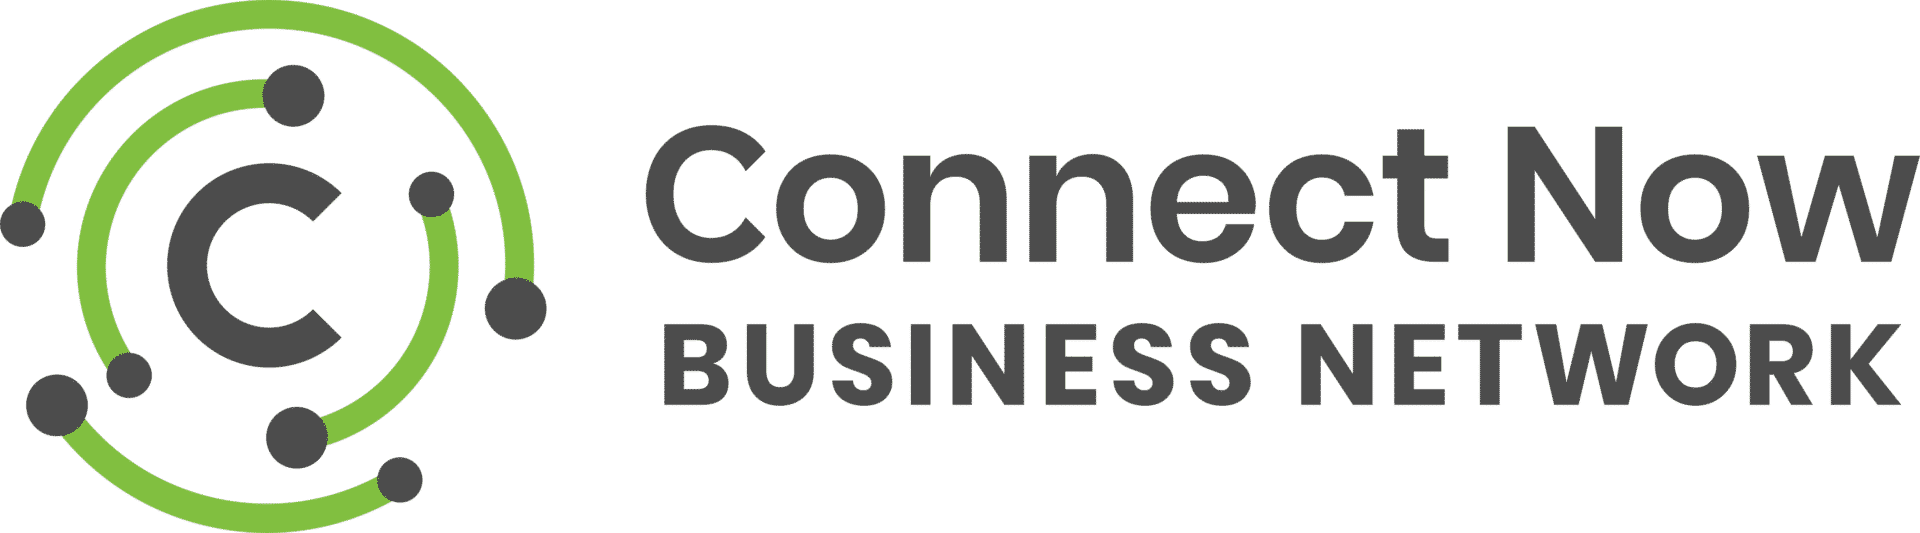 https://connectnowbusinessnetwork.com/wp-content/uploads/2018/10/CNBN-LOGO-COLOR.png